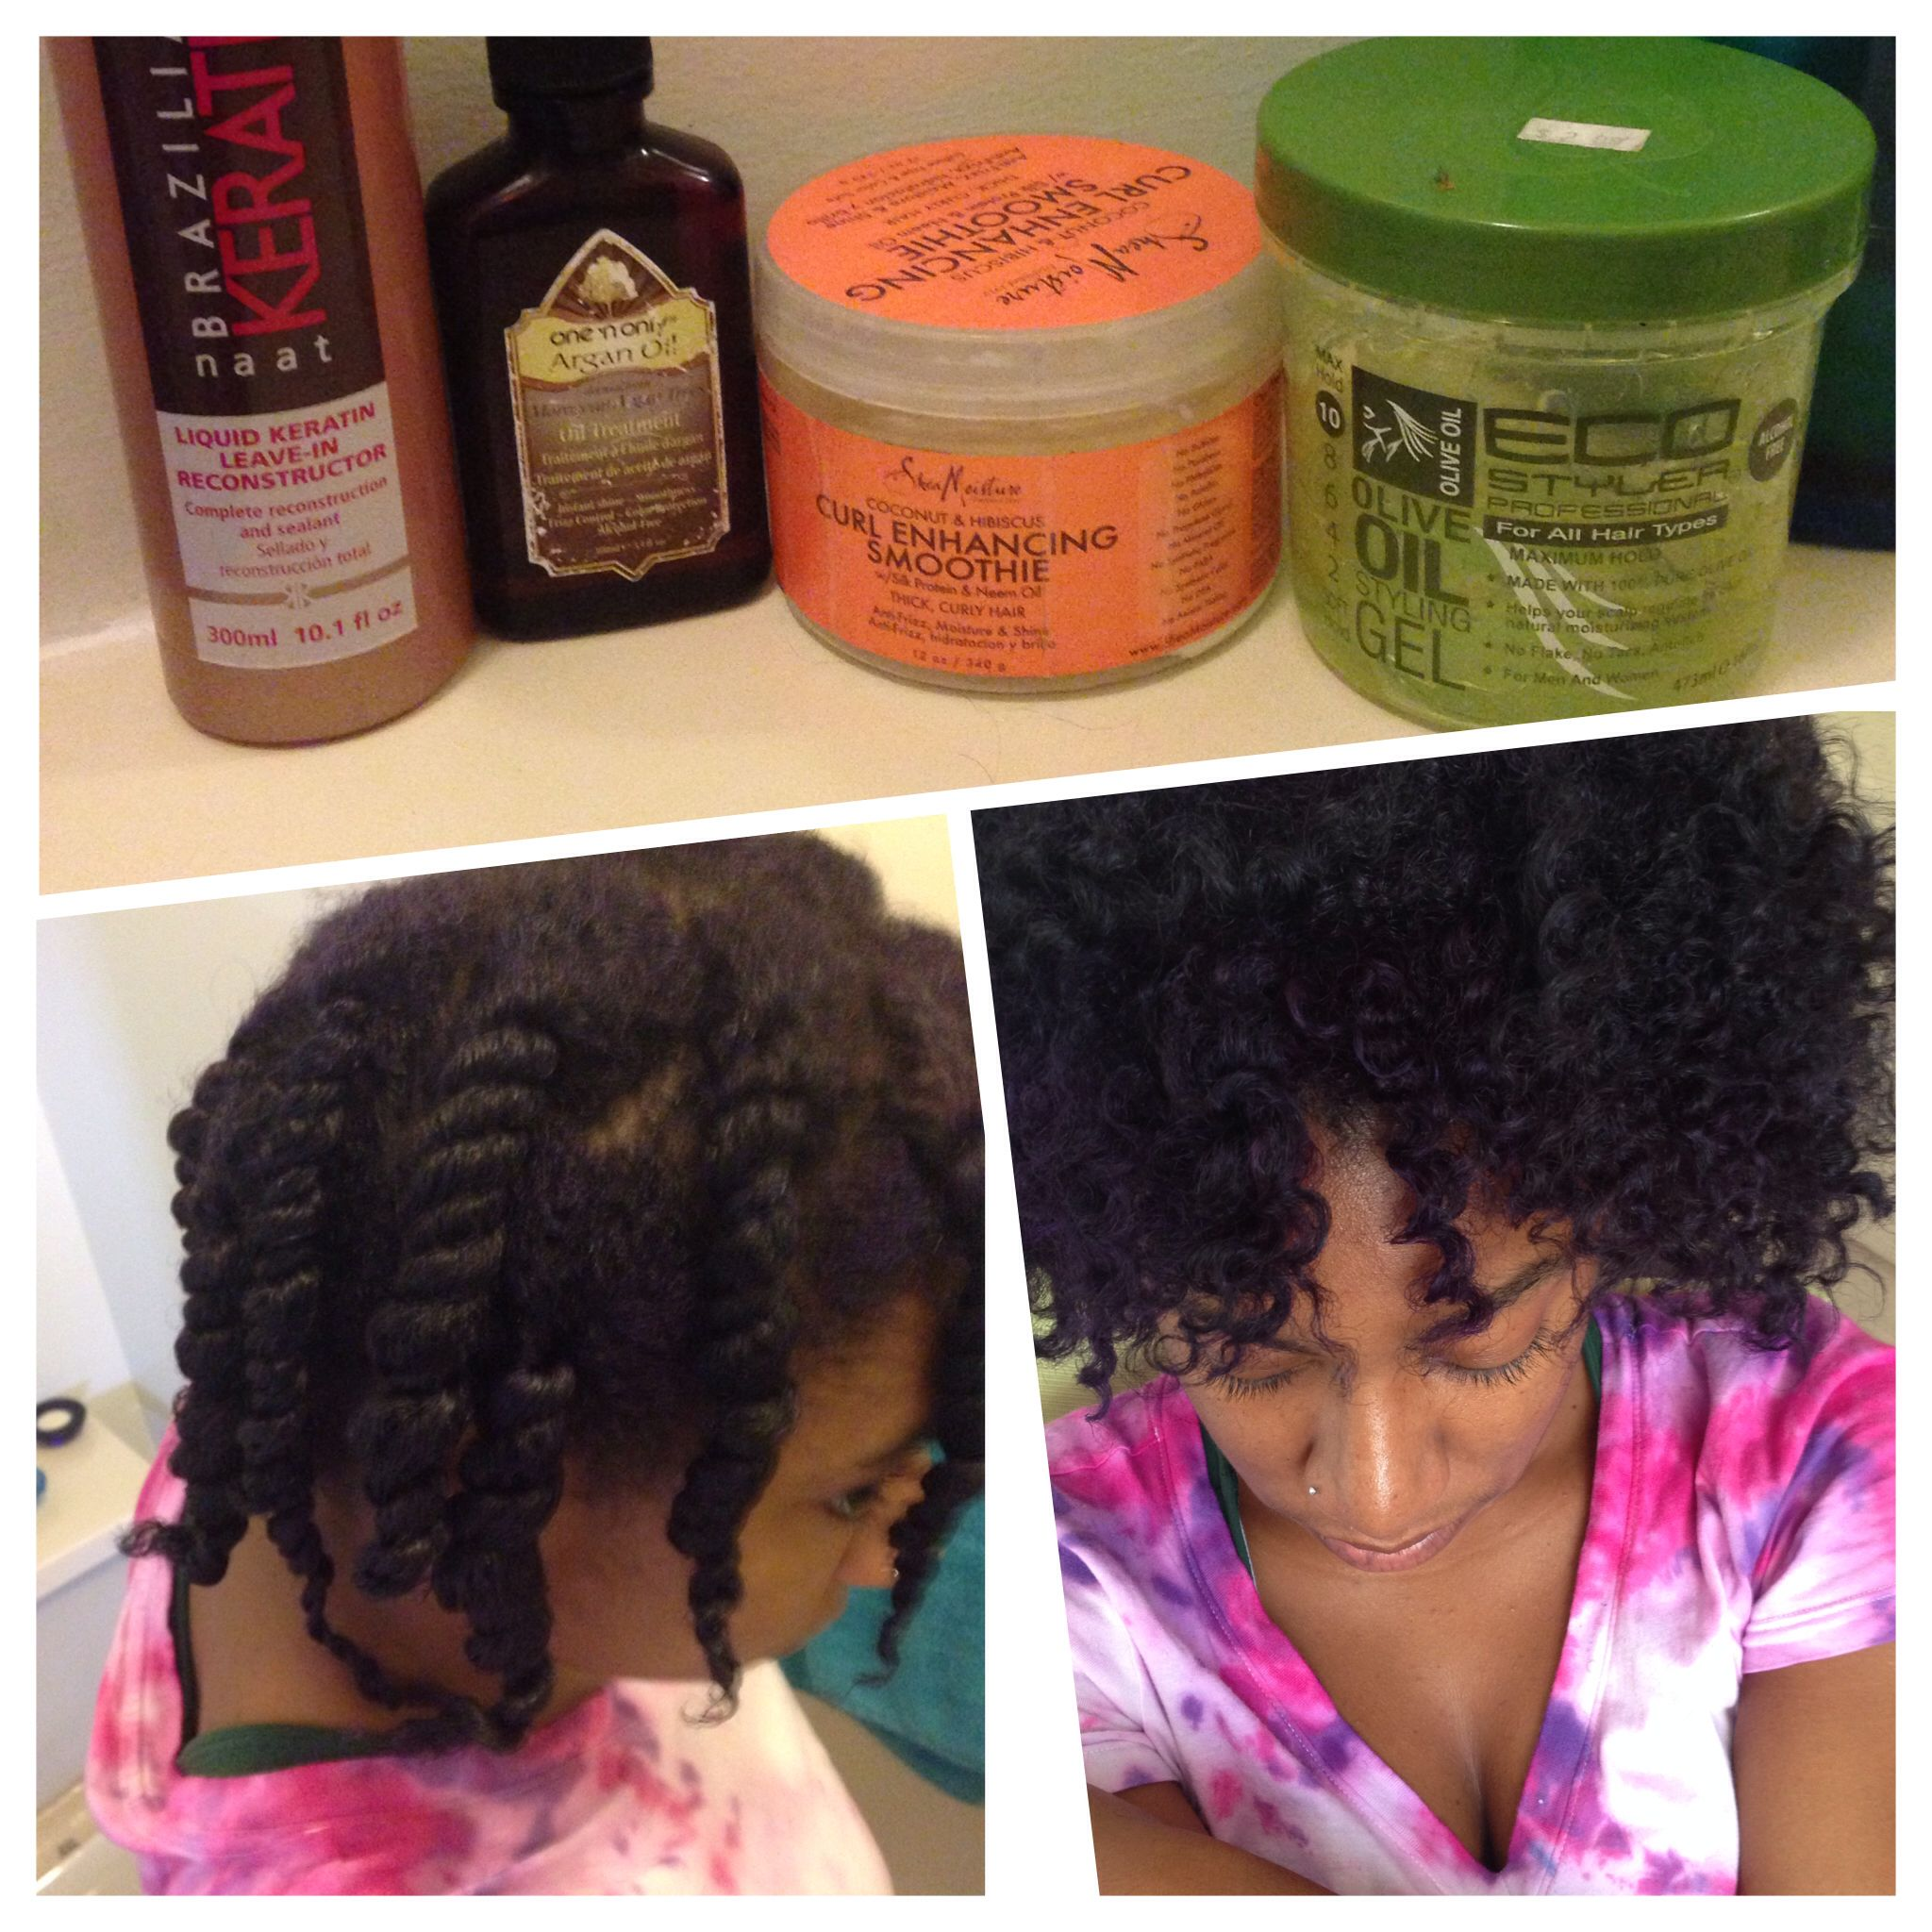 3c 4a Natural Hair Curly Routine Loc Method Leave In Argon Oil Curl Smoothie Cream And Echo Styler O 4a Natural Hair Natural Hair Styles Curly Hair Styles